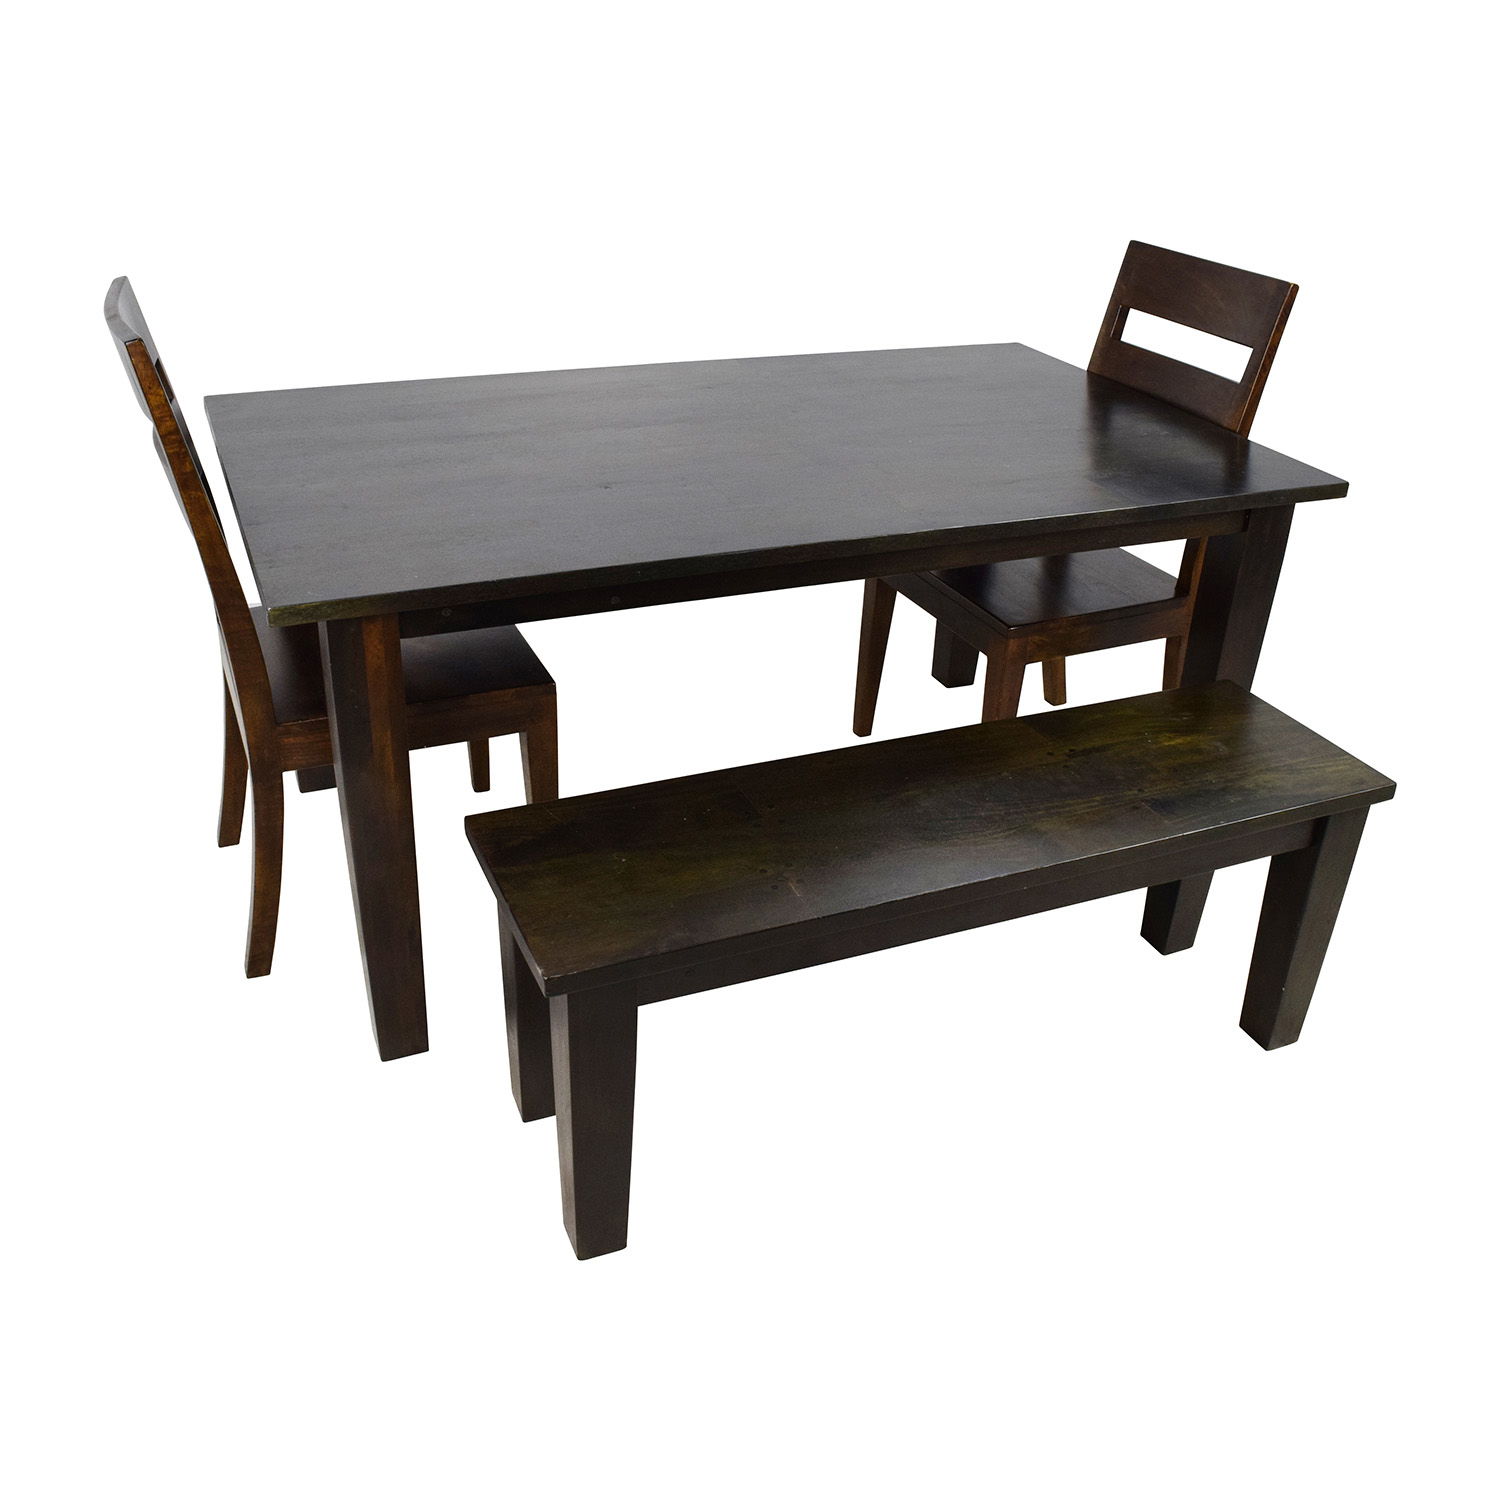 Crate and Barrel Crate & Barrel Basque Java Dining Table Set on sale